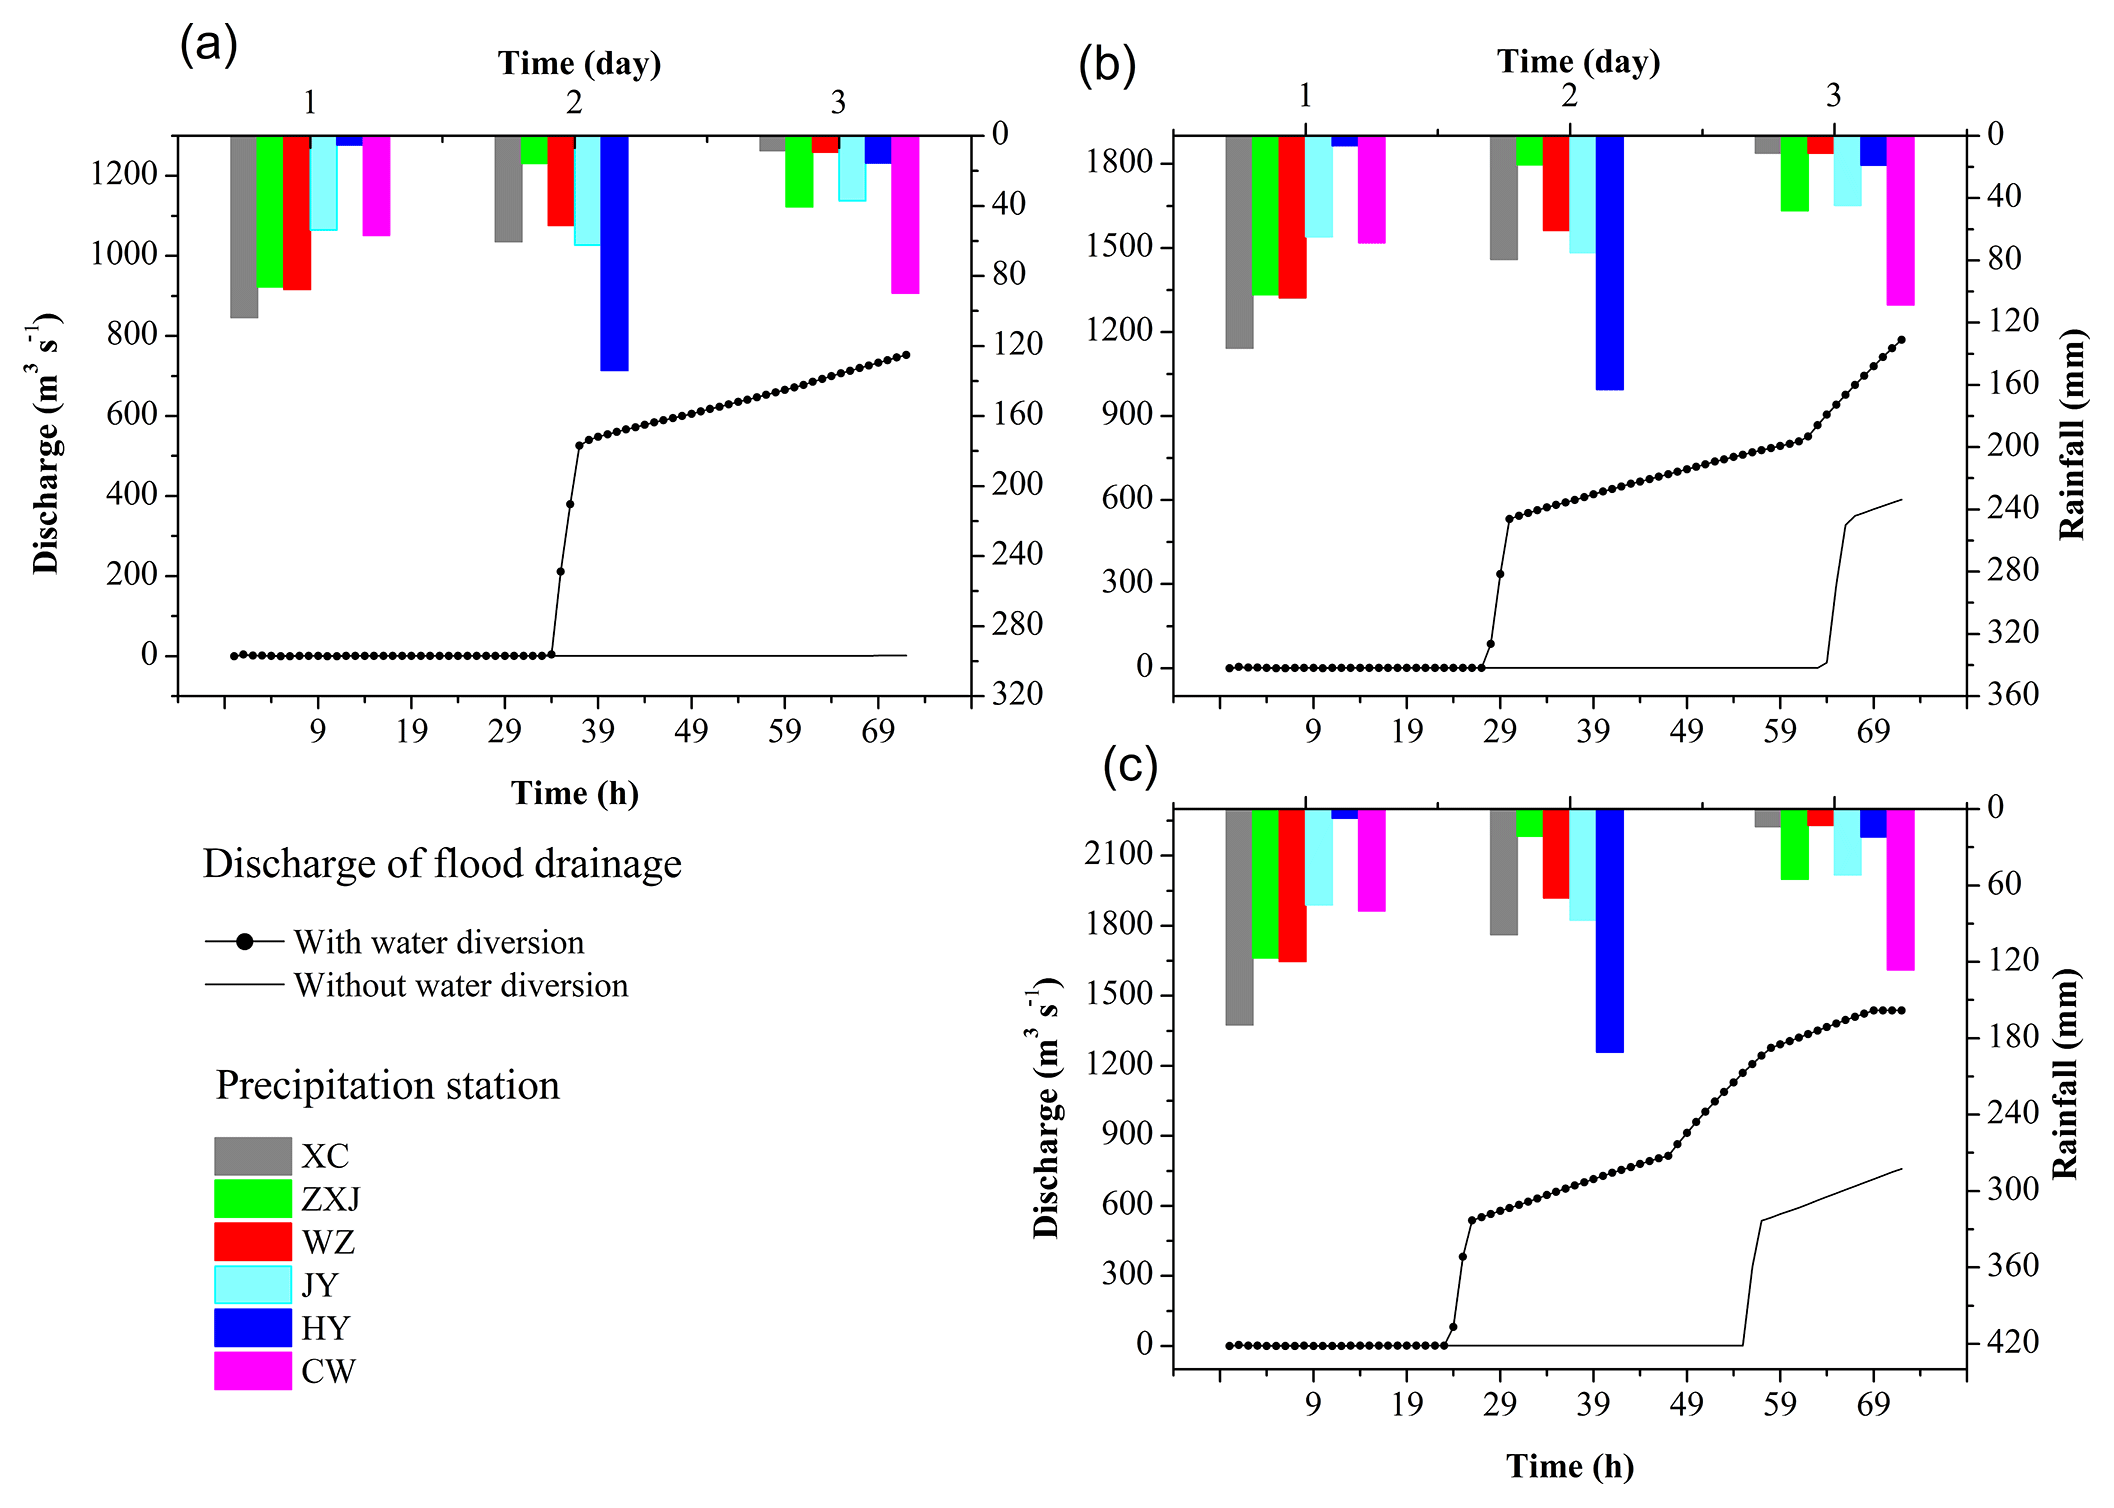 NHESS - Impacts of the eastern route of the South-to-North Water